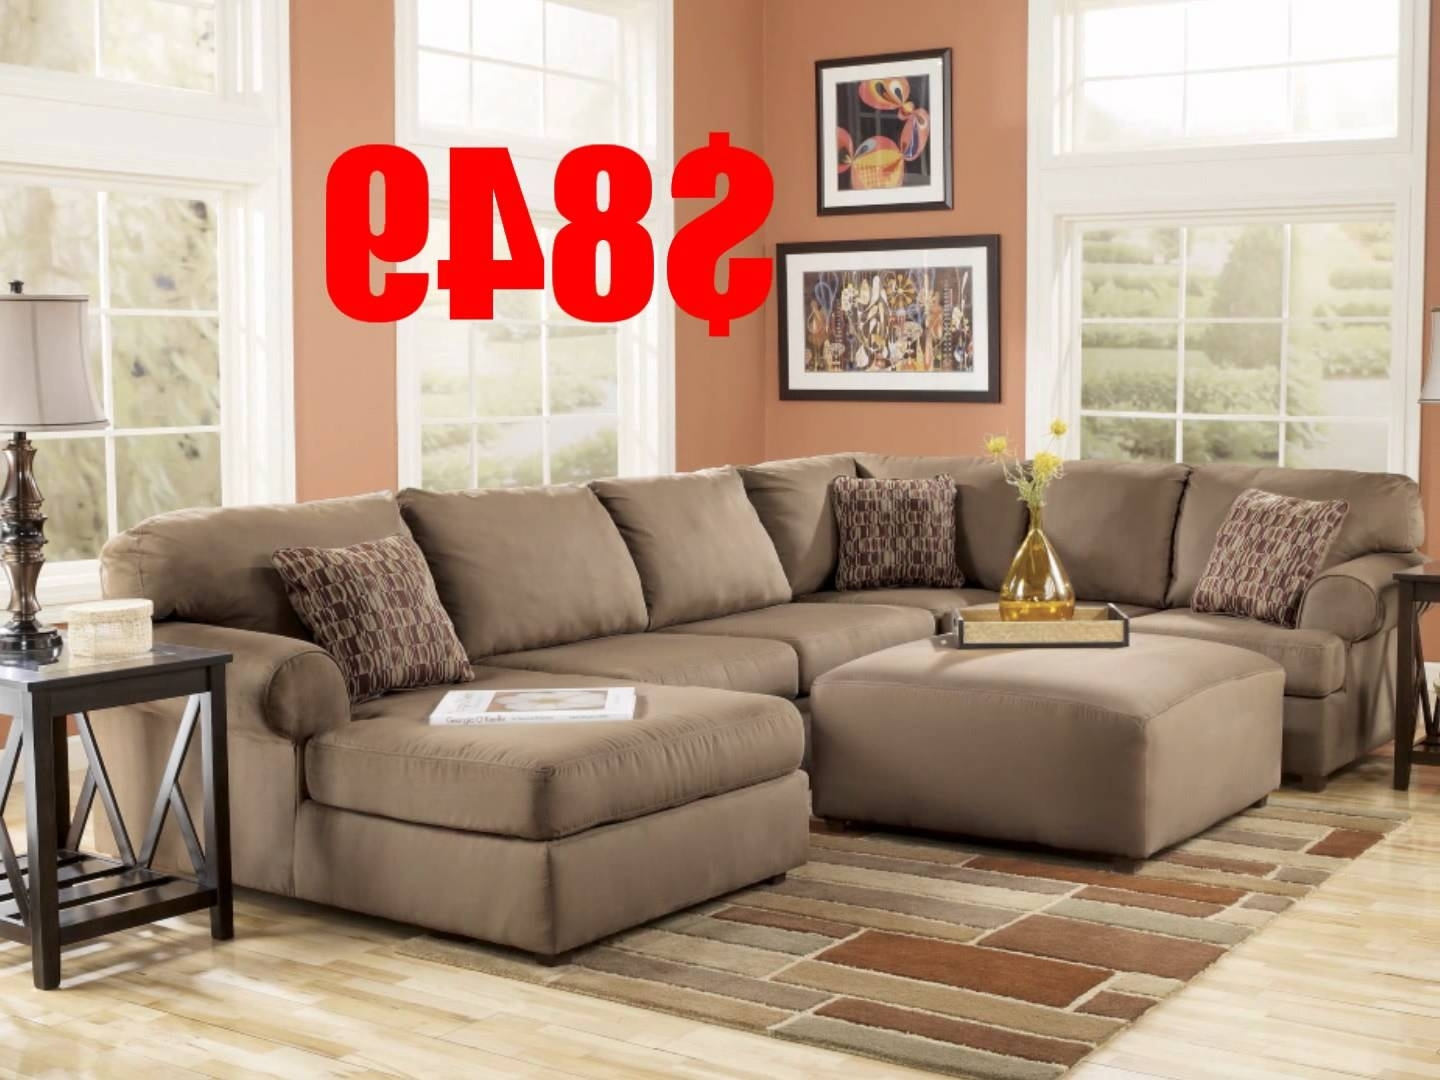 Preferred Ashley Furniture Sectional Sofas – Mforum Throughout 10X8 Sectional Sofas (View 3 of 15)